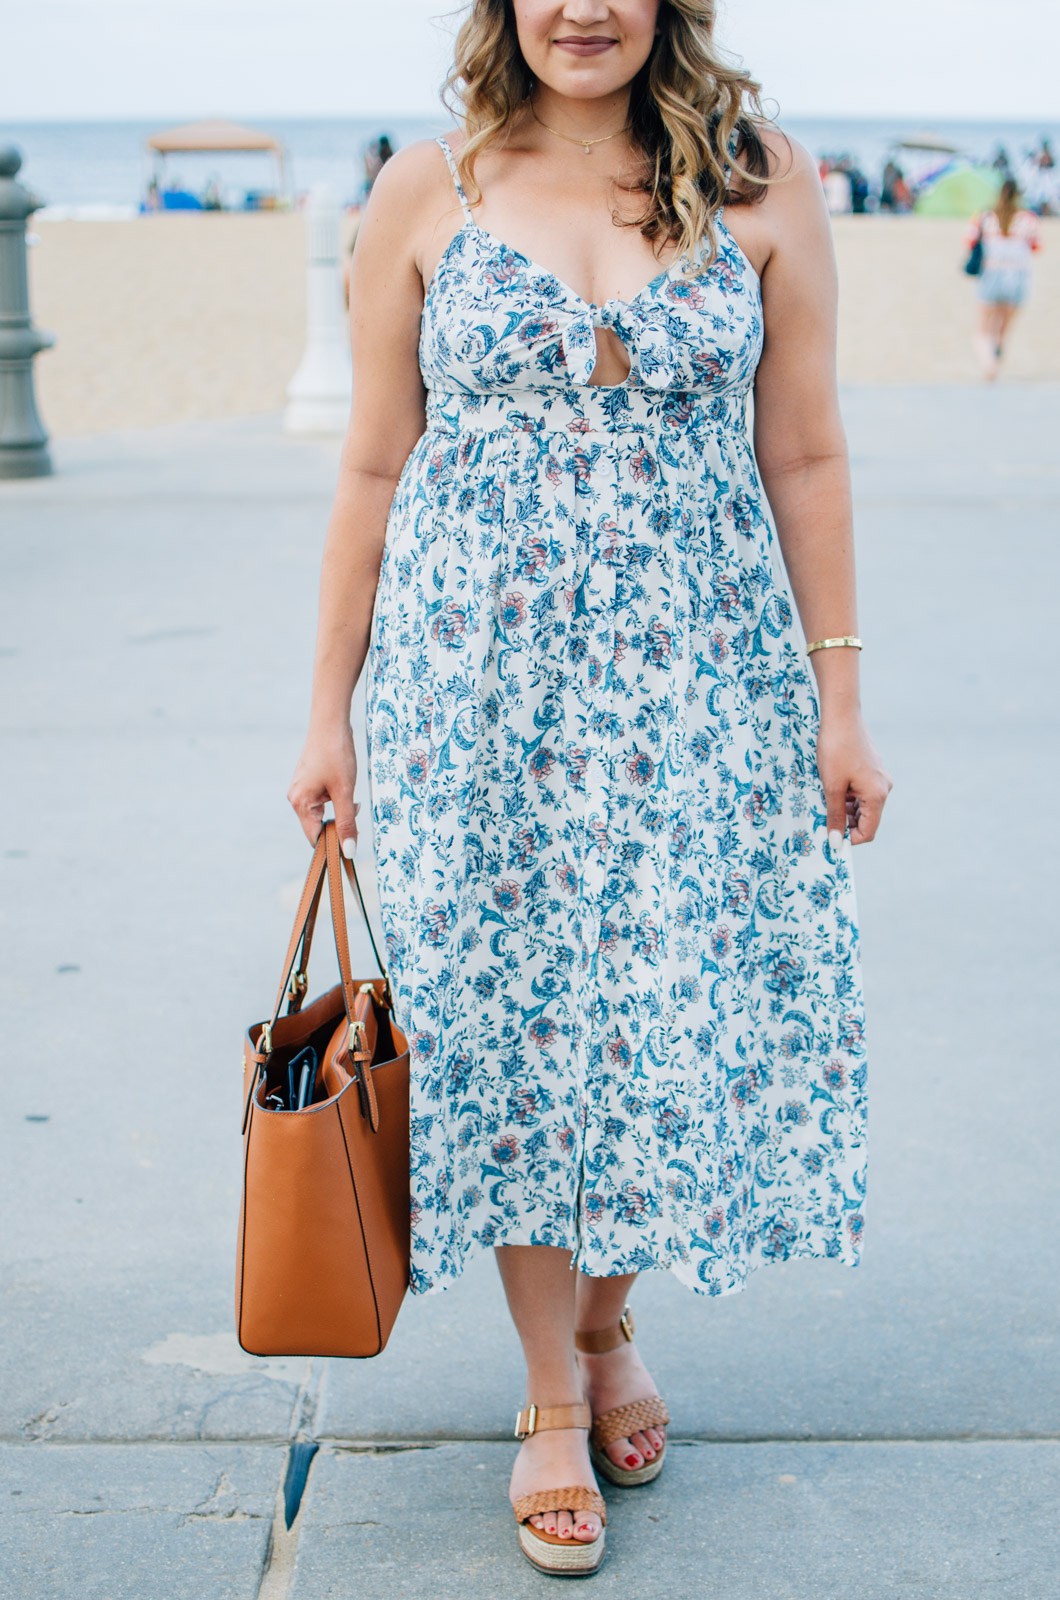 summer style - knot-front dress | For more cute vacation outfit ideas, head to bylaurenm.com!